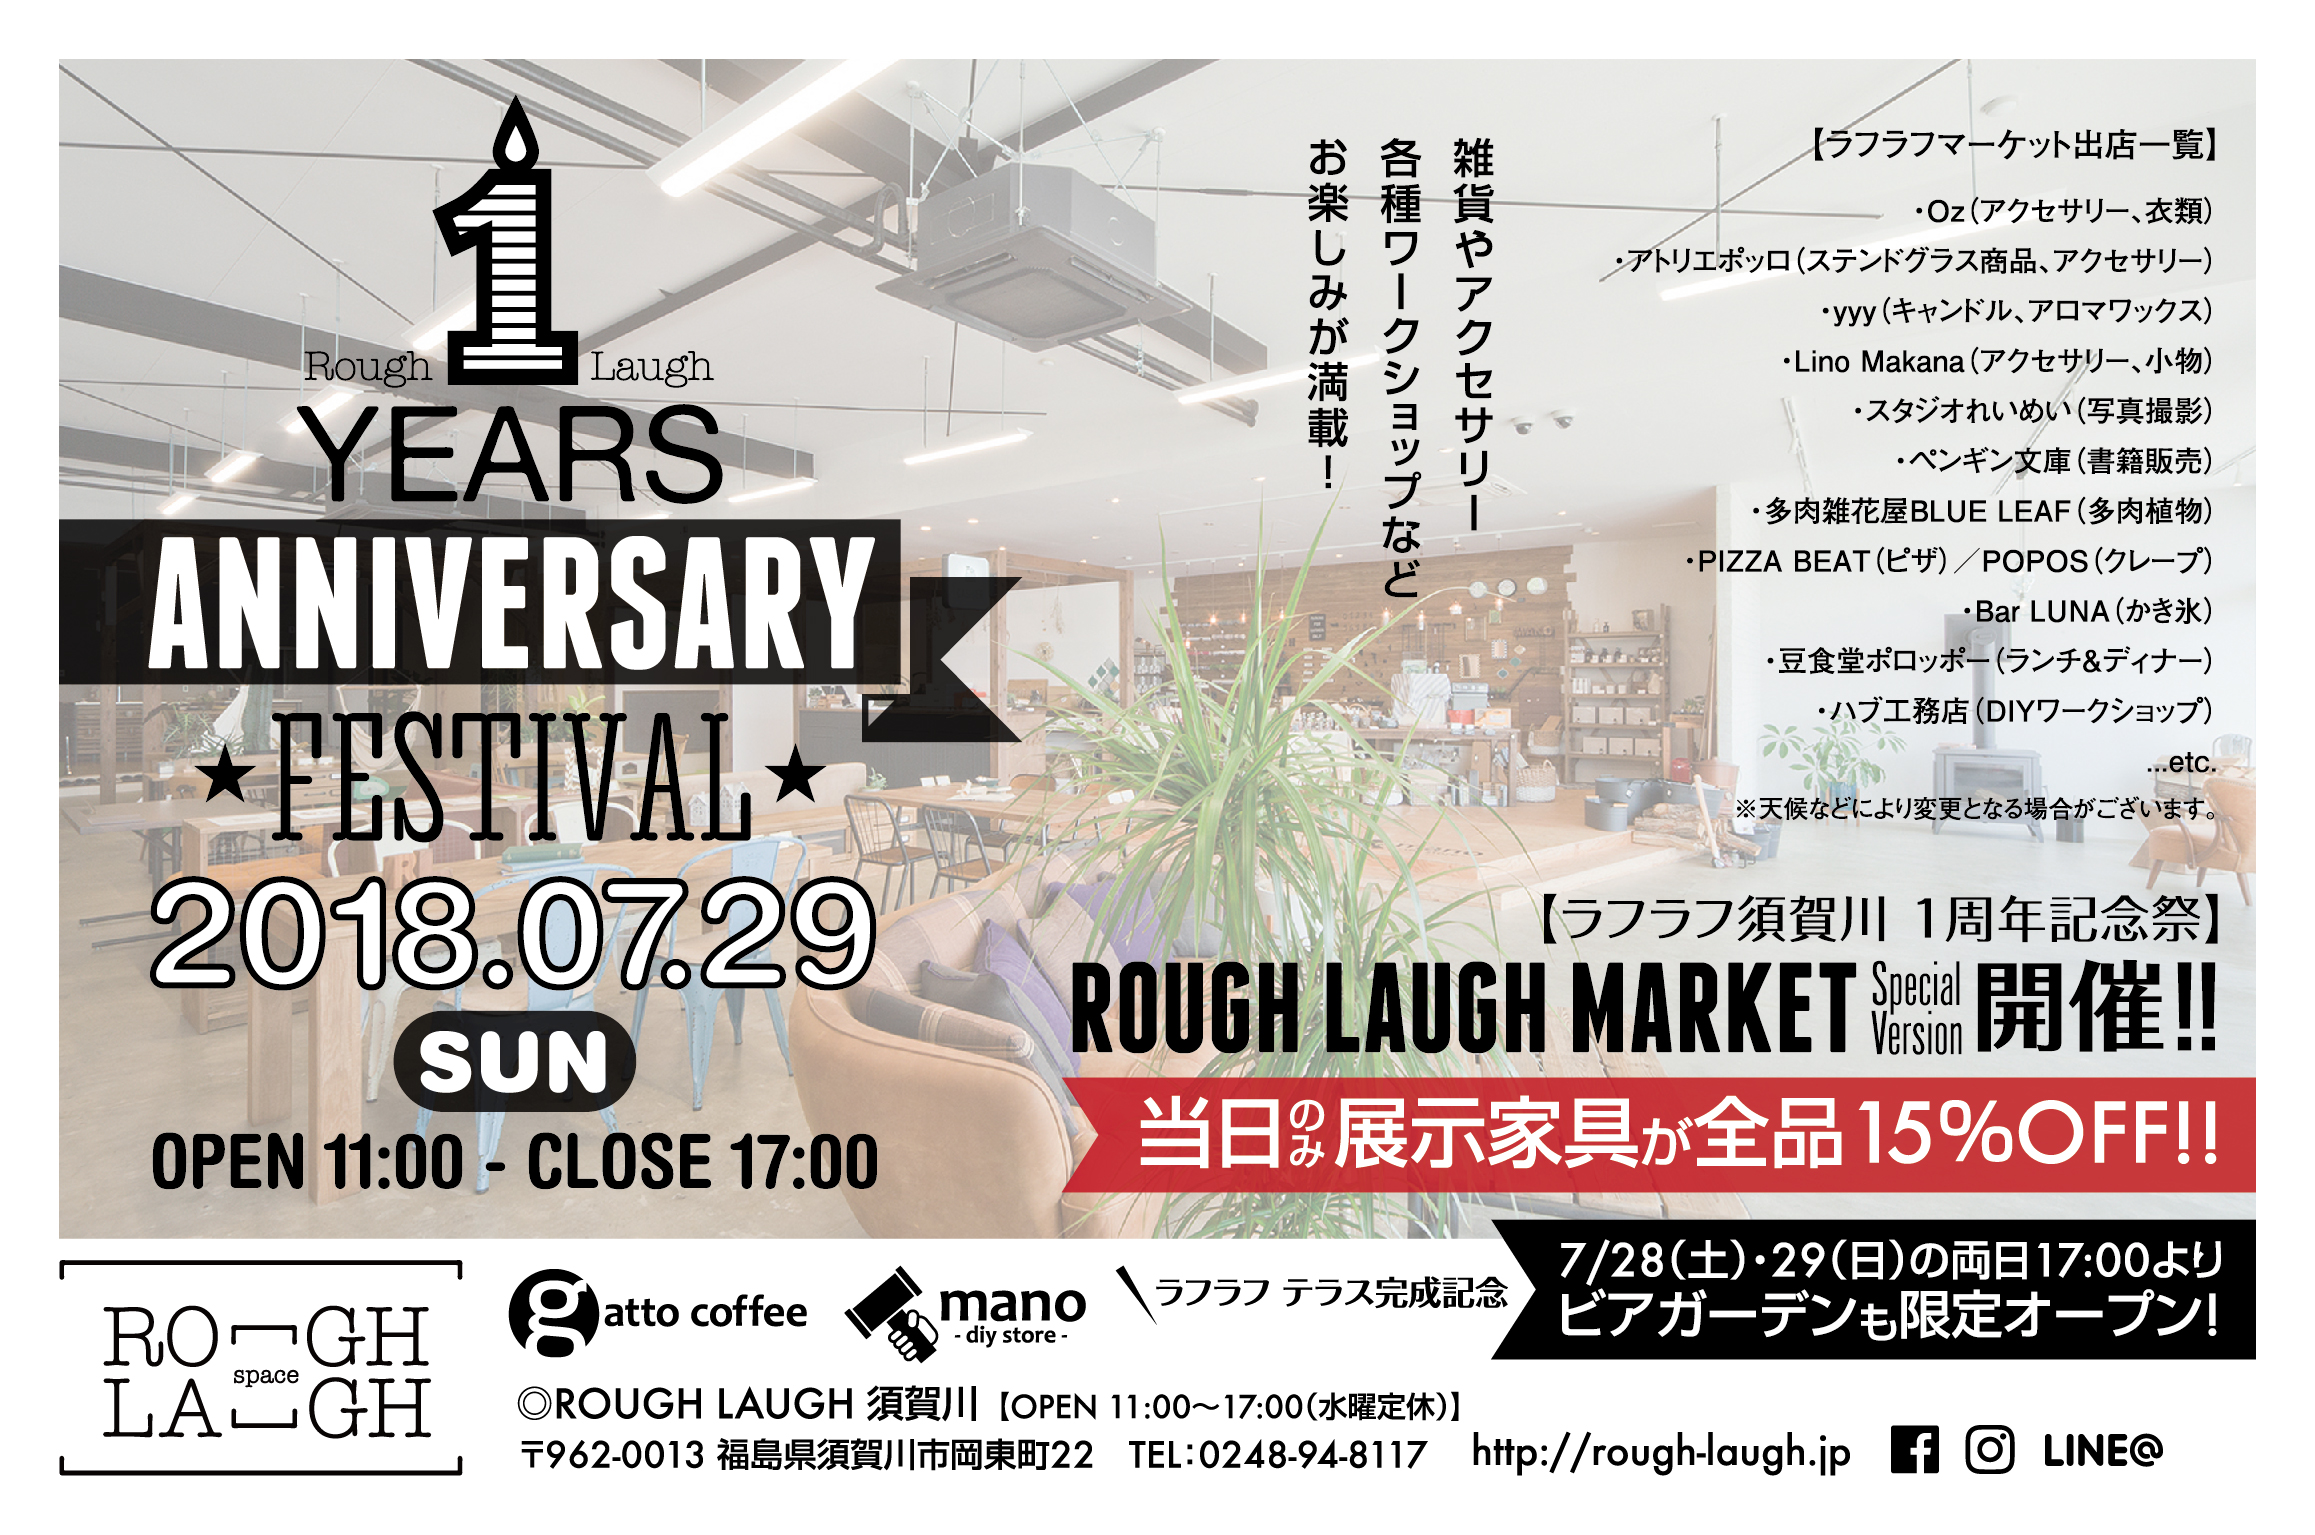 \RoughLaugh 1YEARS ANNIVERSARY FESTIVAL開催/